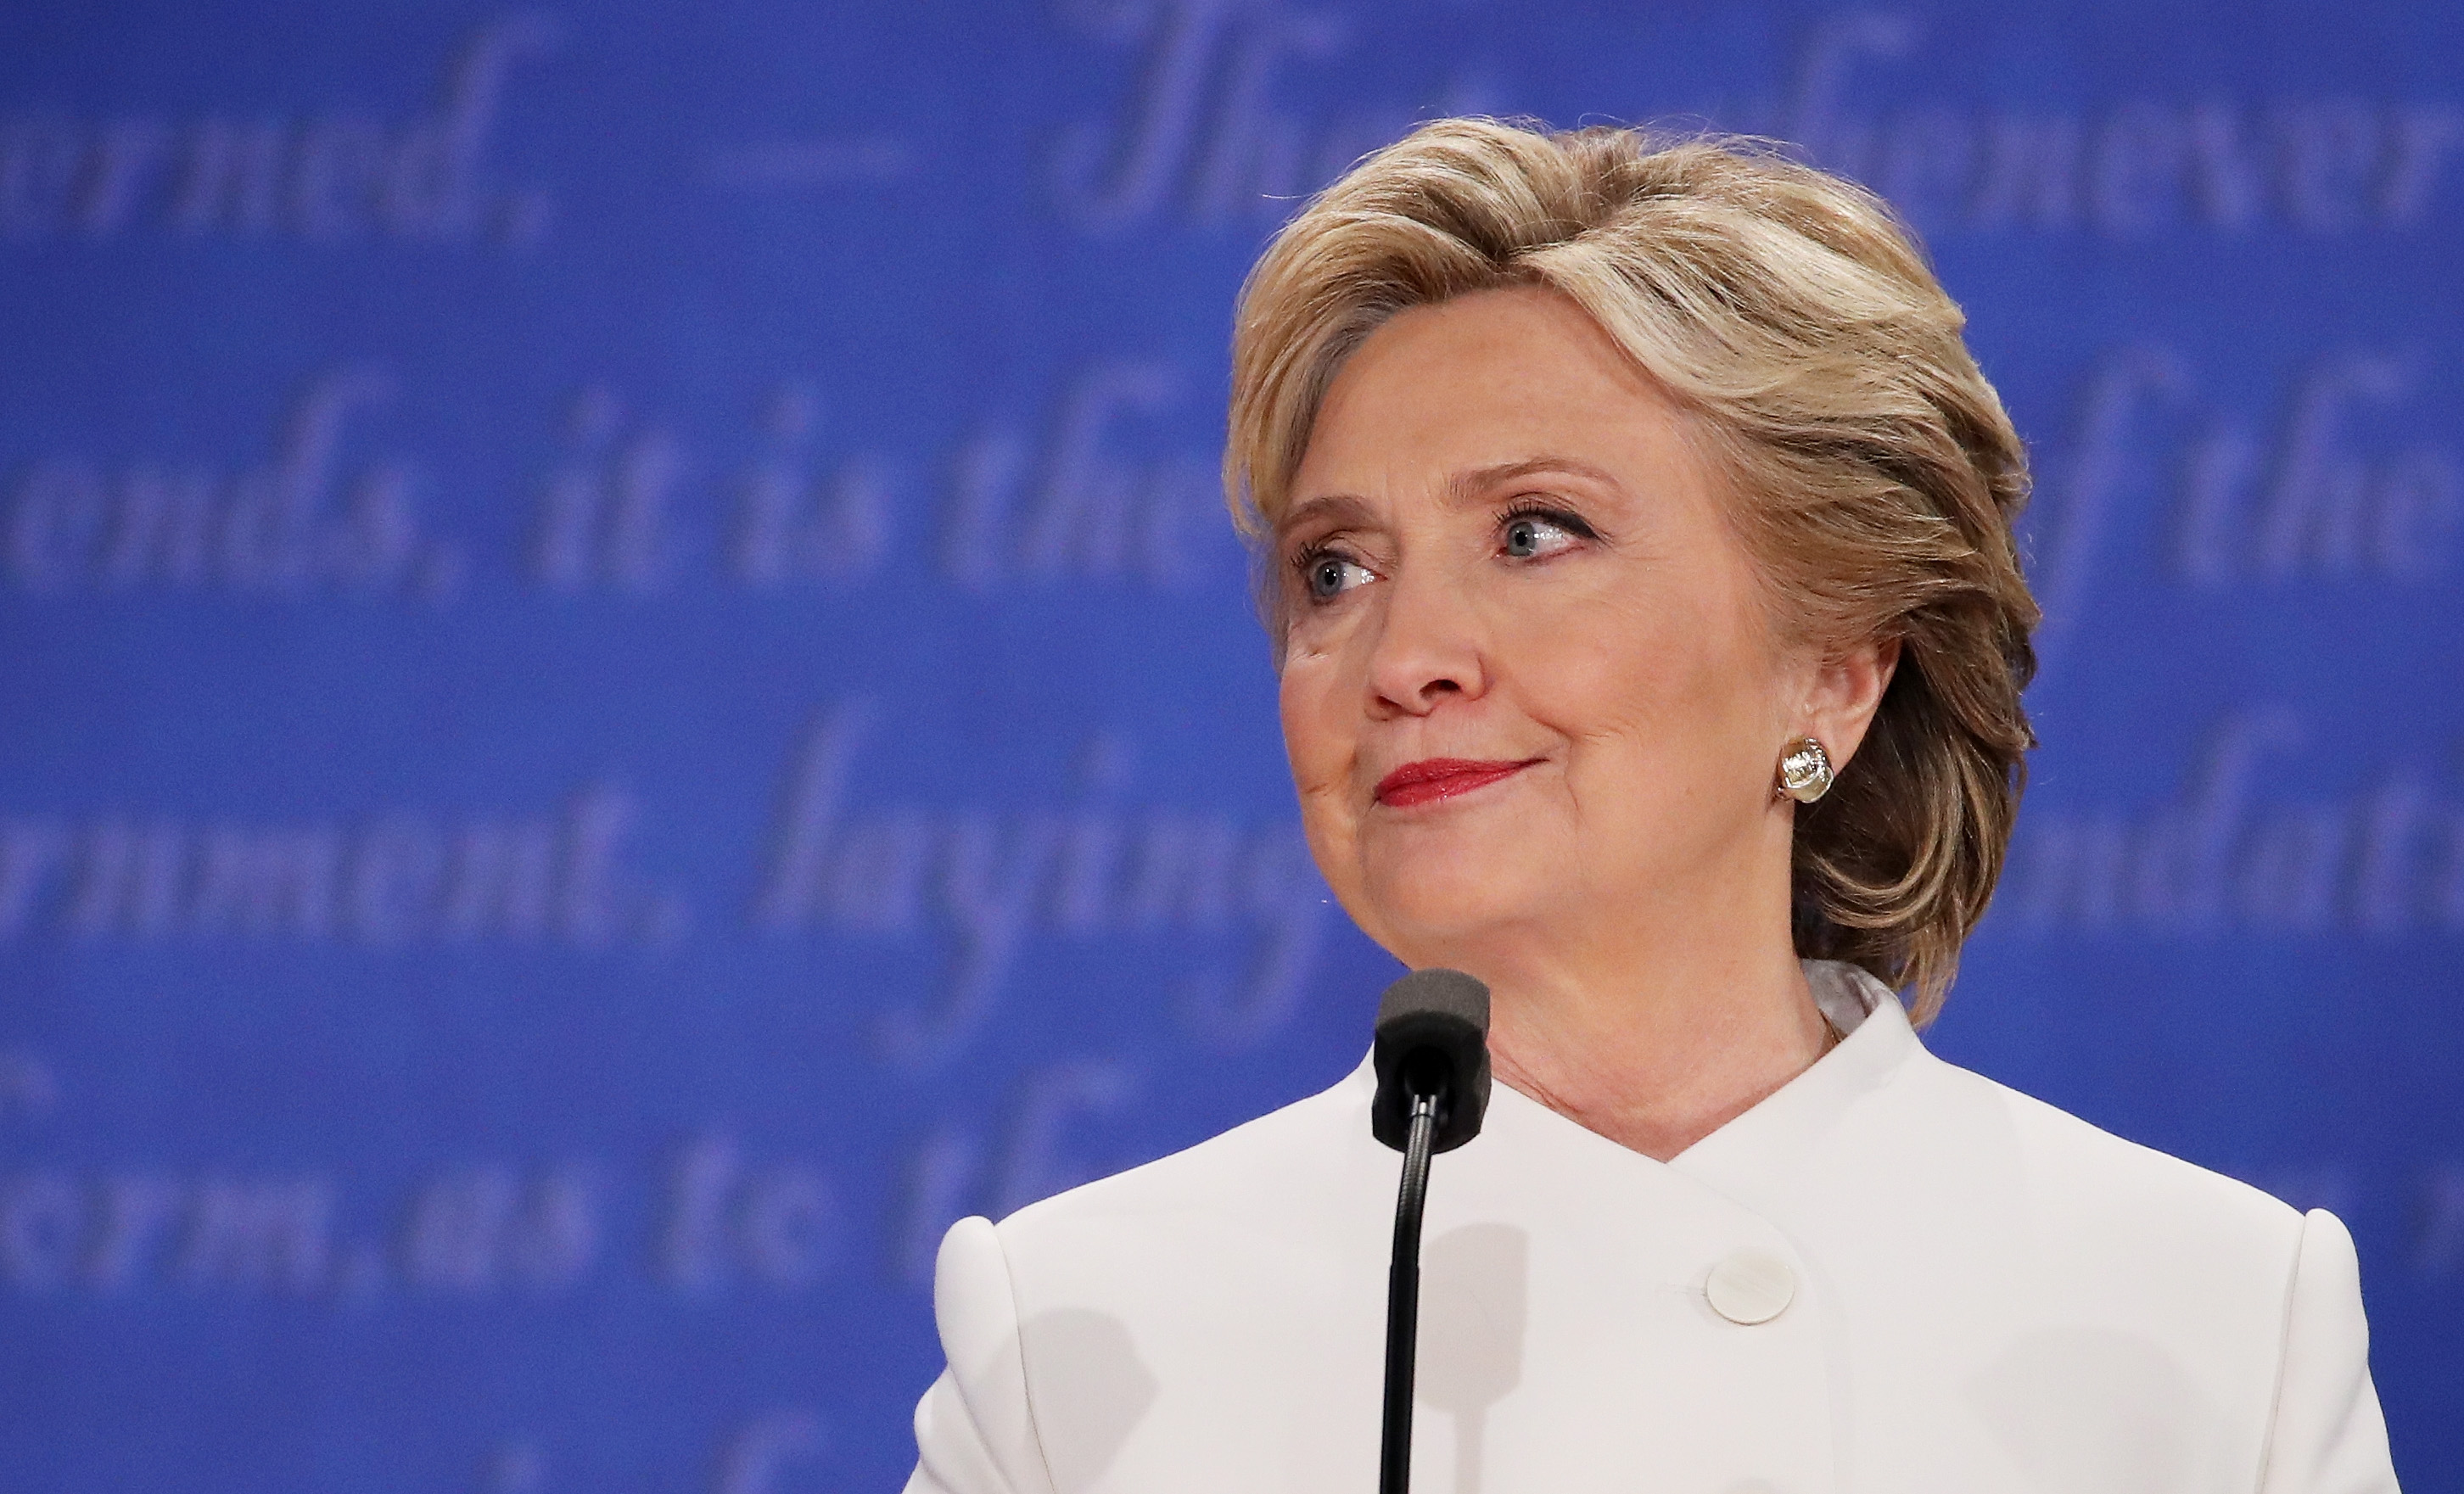 Hillary Clinton listens to Republican presidential nominee Donald Trump speak during the third U.S. presidential debate at the Thomas & Mack Center on October 19, 2016 in Las Vegas, Nevada.